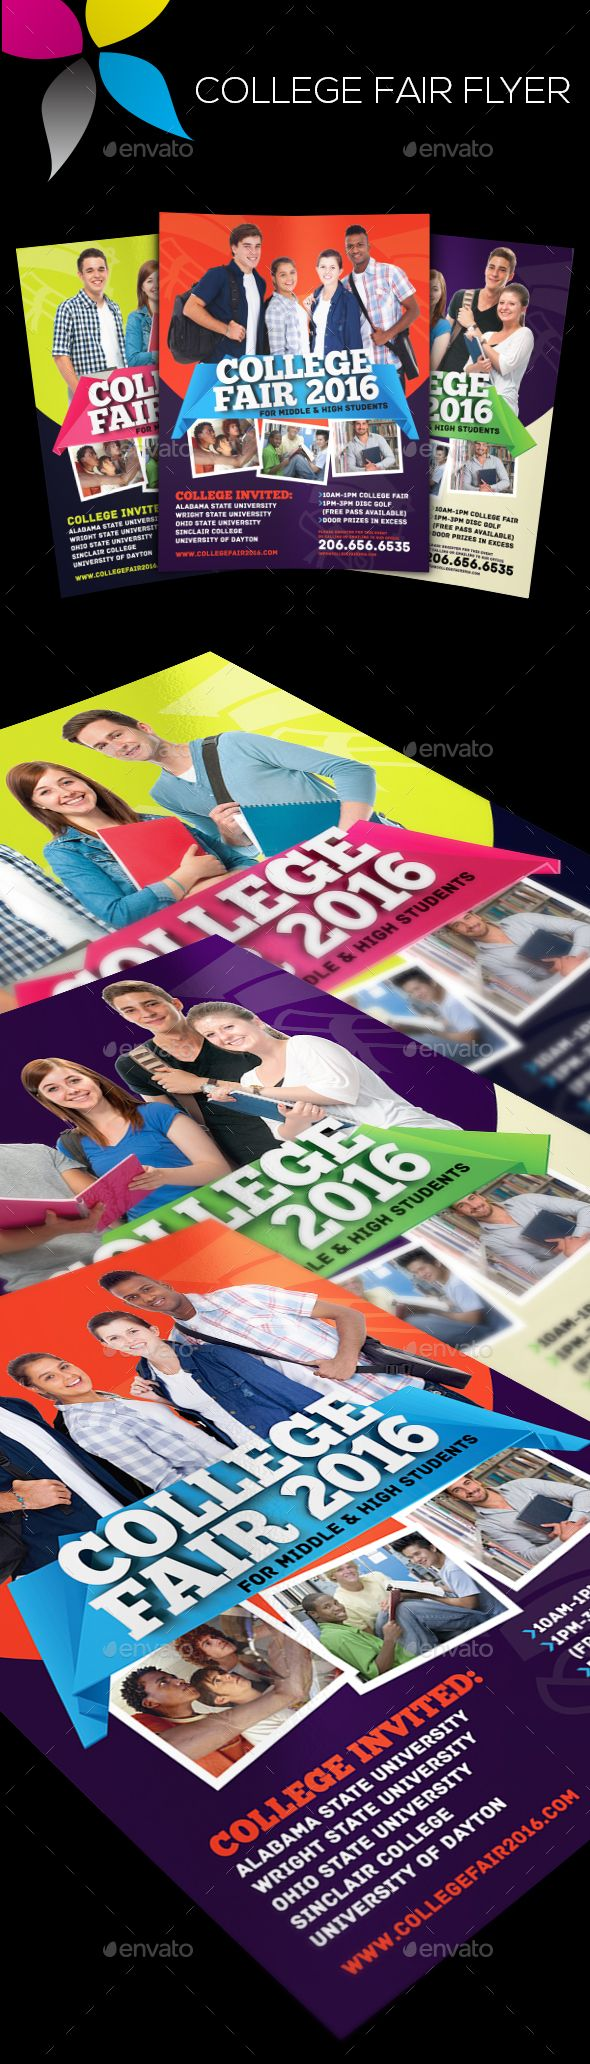 college fair flyer template psd design download http